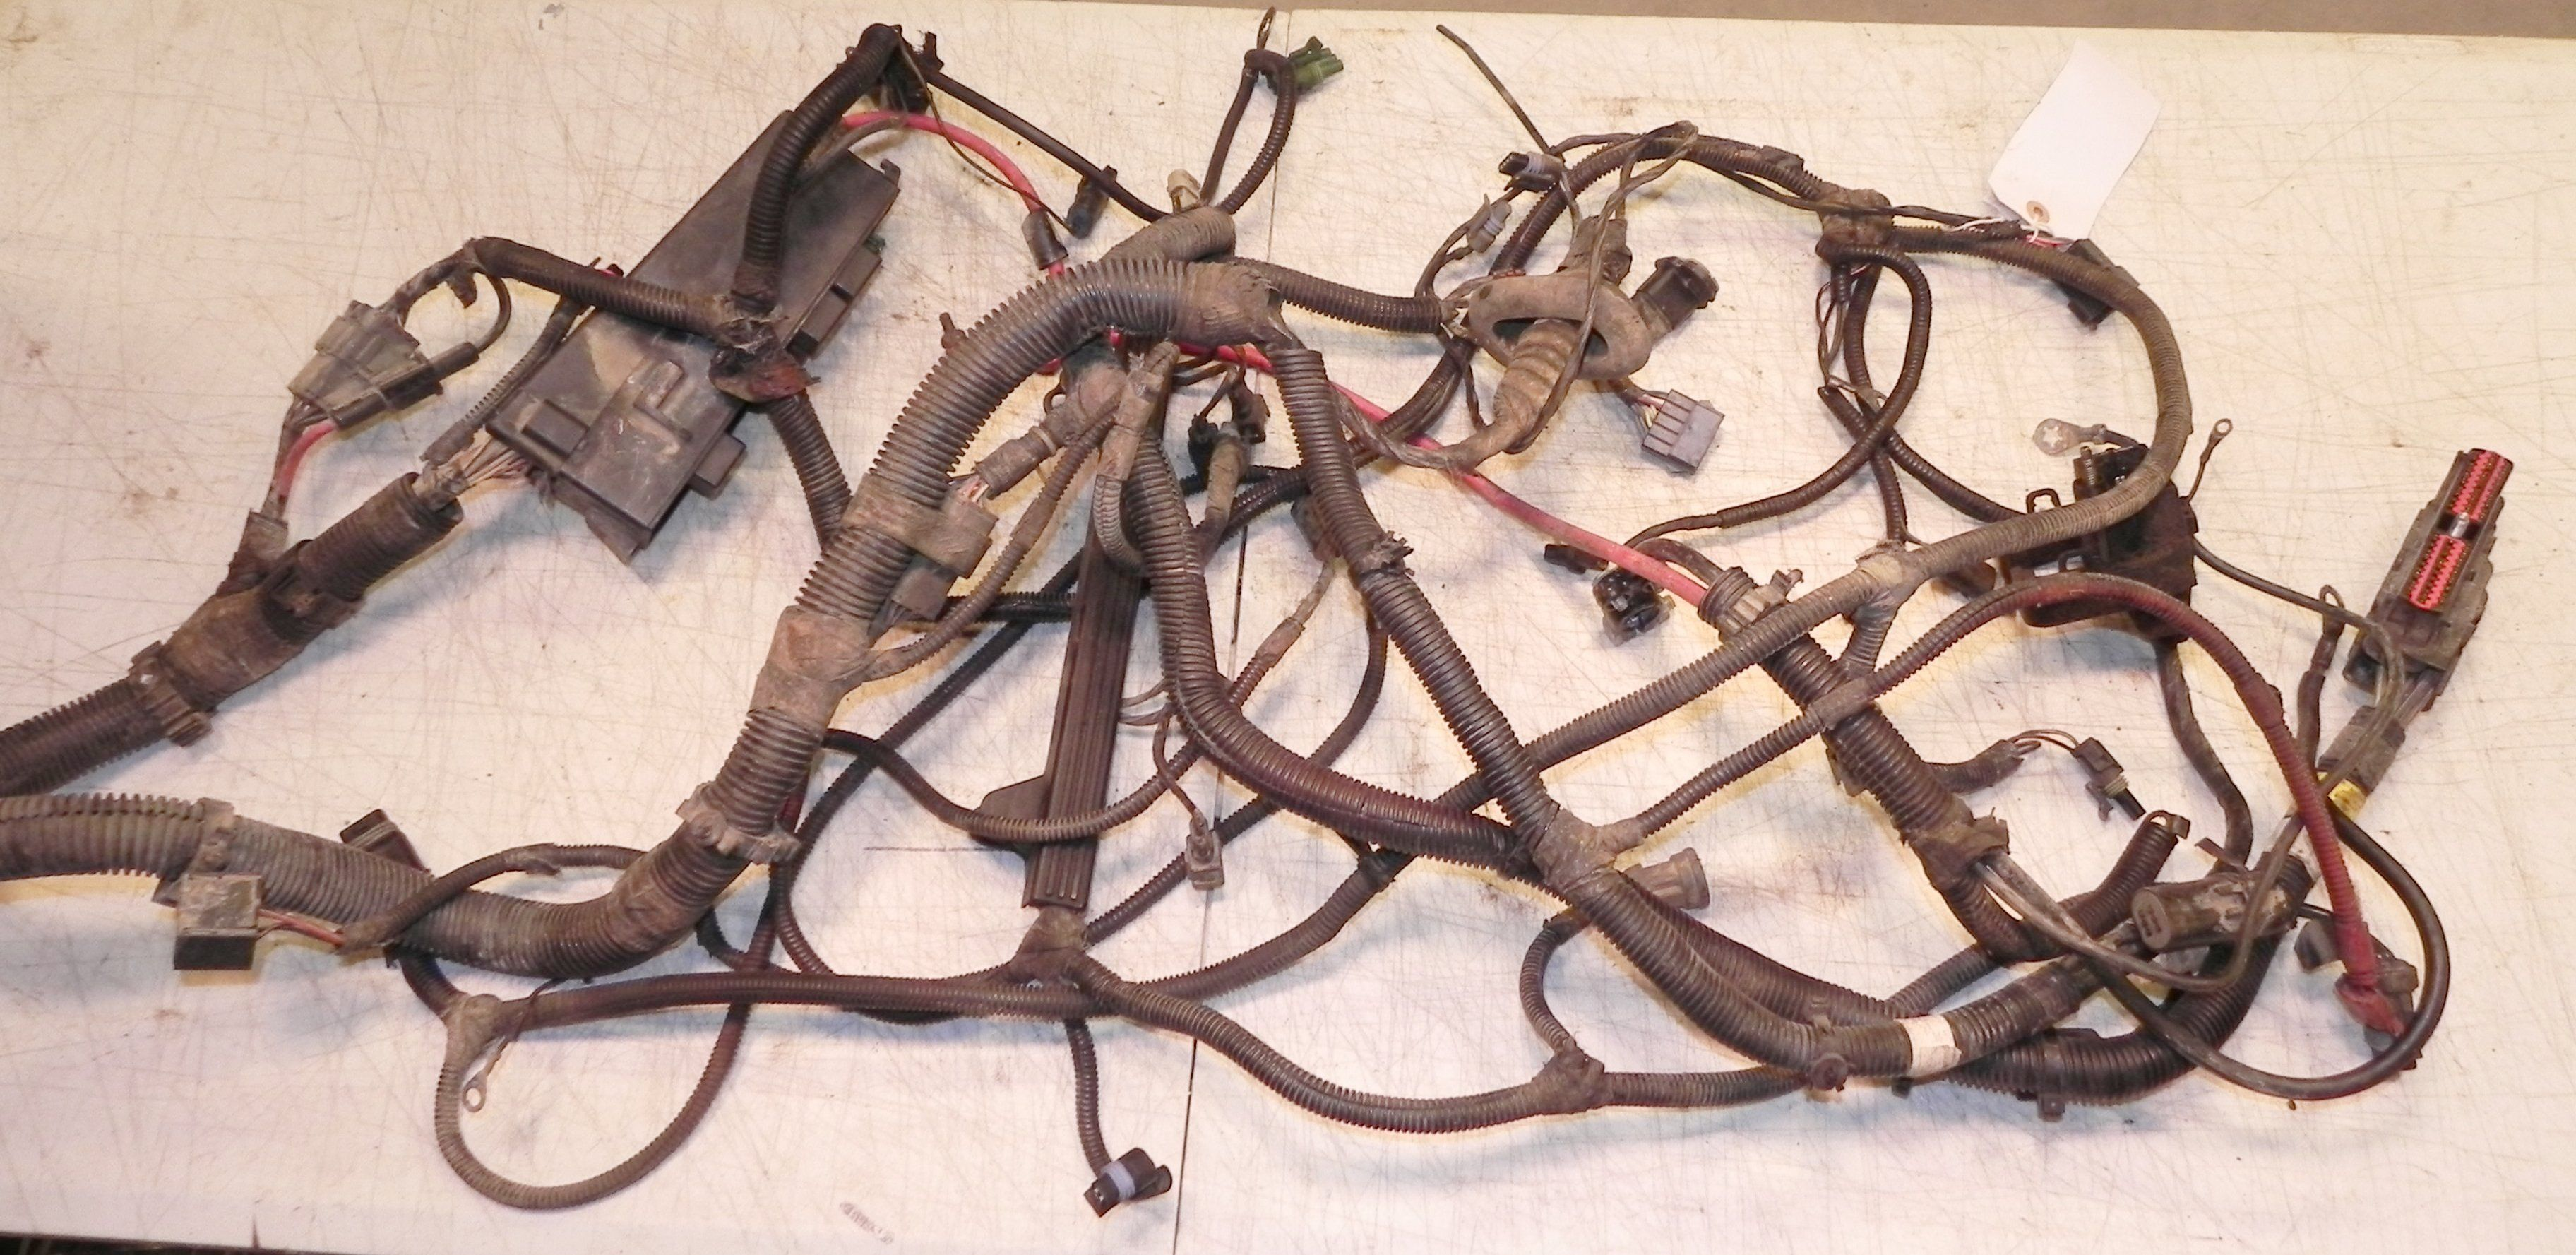 95 Jeep Yj Engine Wiring Harness Starting Know About Diagram Tj Wrangler 2 5l 4 Cyl 5 Spd 94 Oem Rh